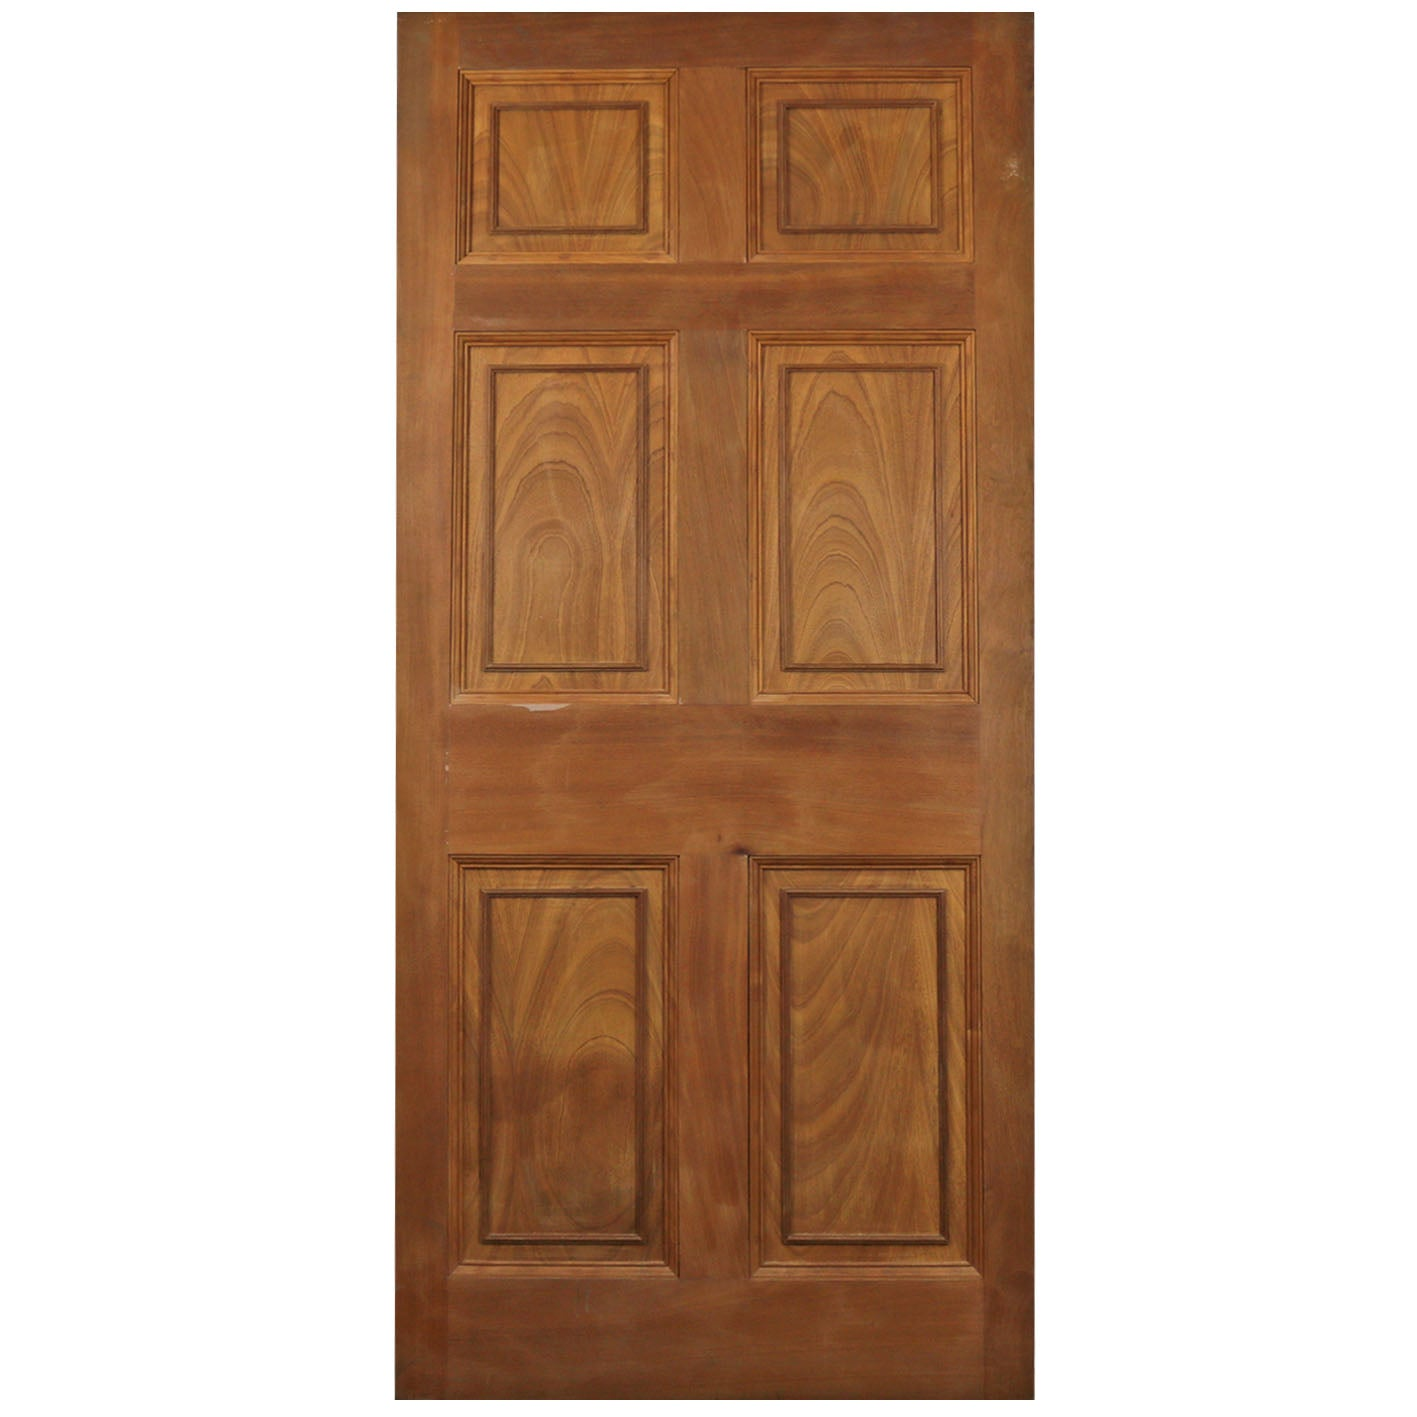 Reclaimed Mahogany Georgian Style Door - 191cm x 88.5cm - architectural-forum